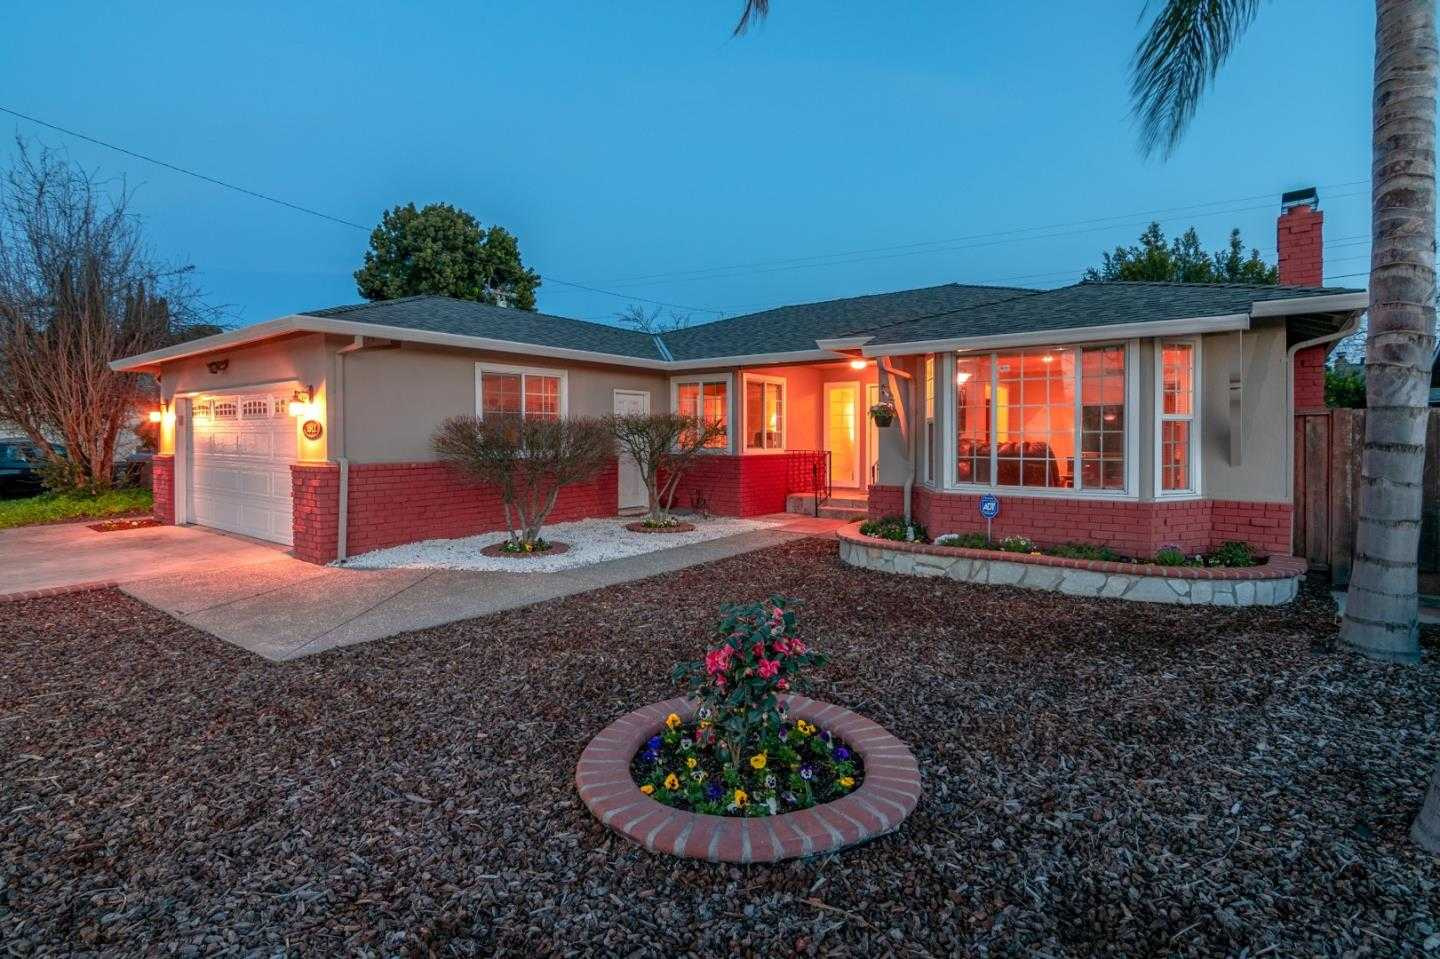 $1,270,000 - 4Br/2Ba -  for Sale in San Jose